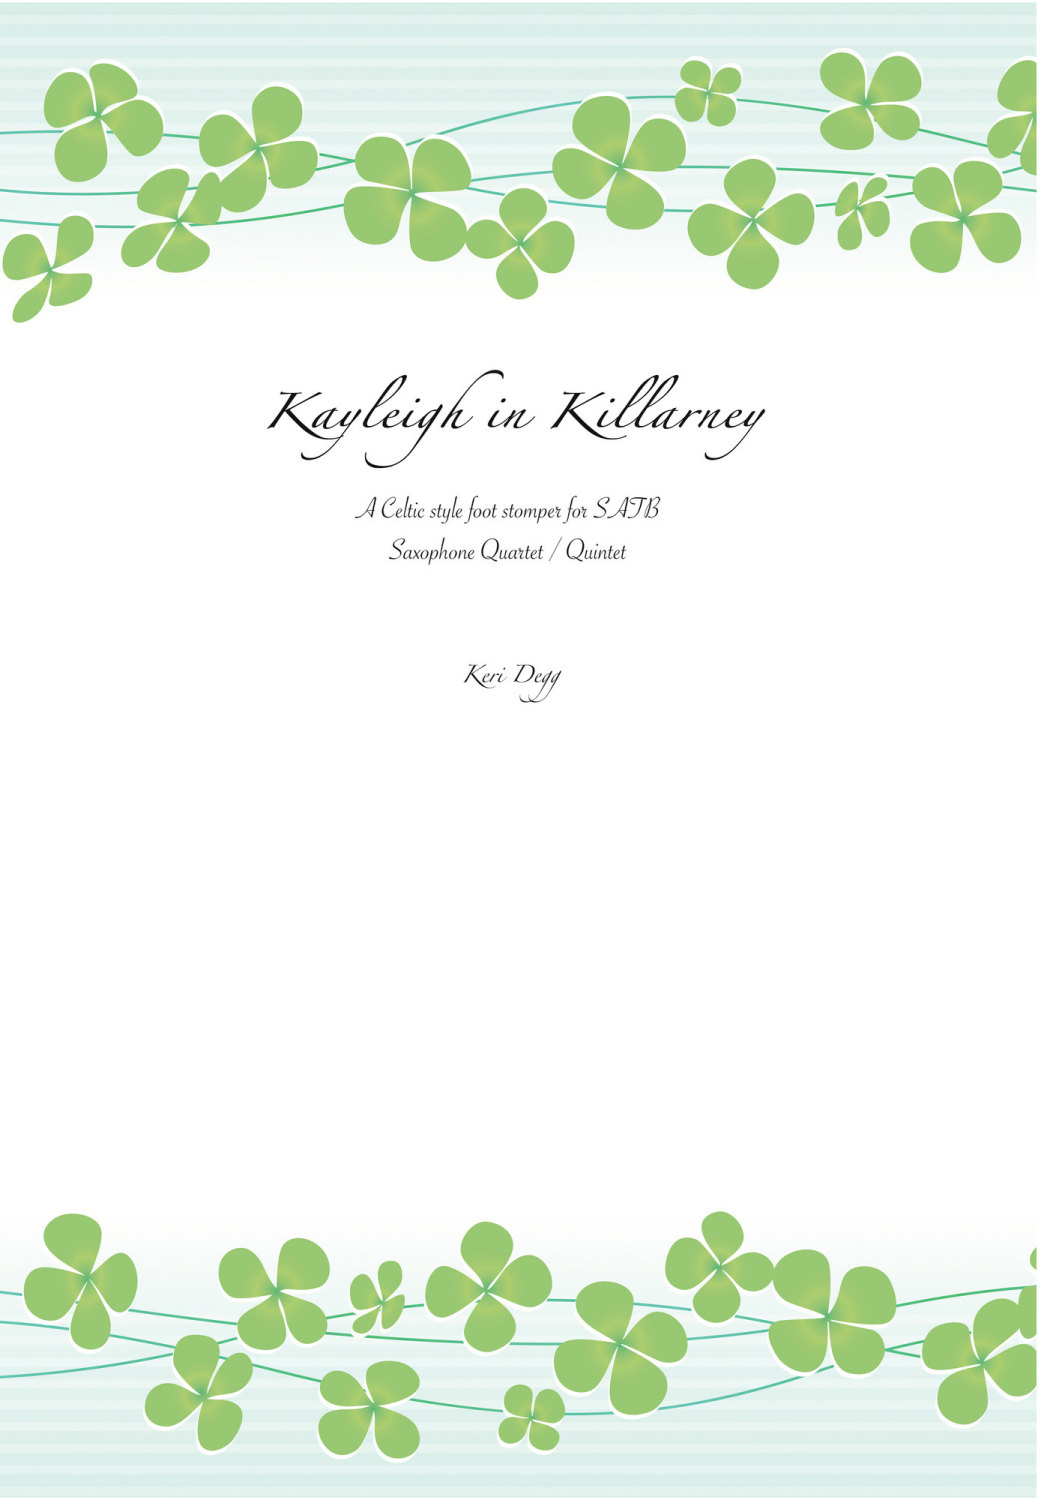 'Kayleigh in Killarney' SATB Saxophone quartet (incl optional 5th part)